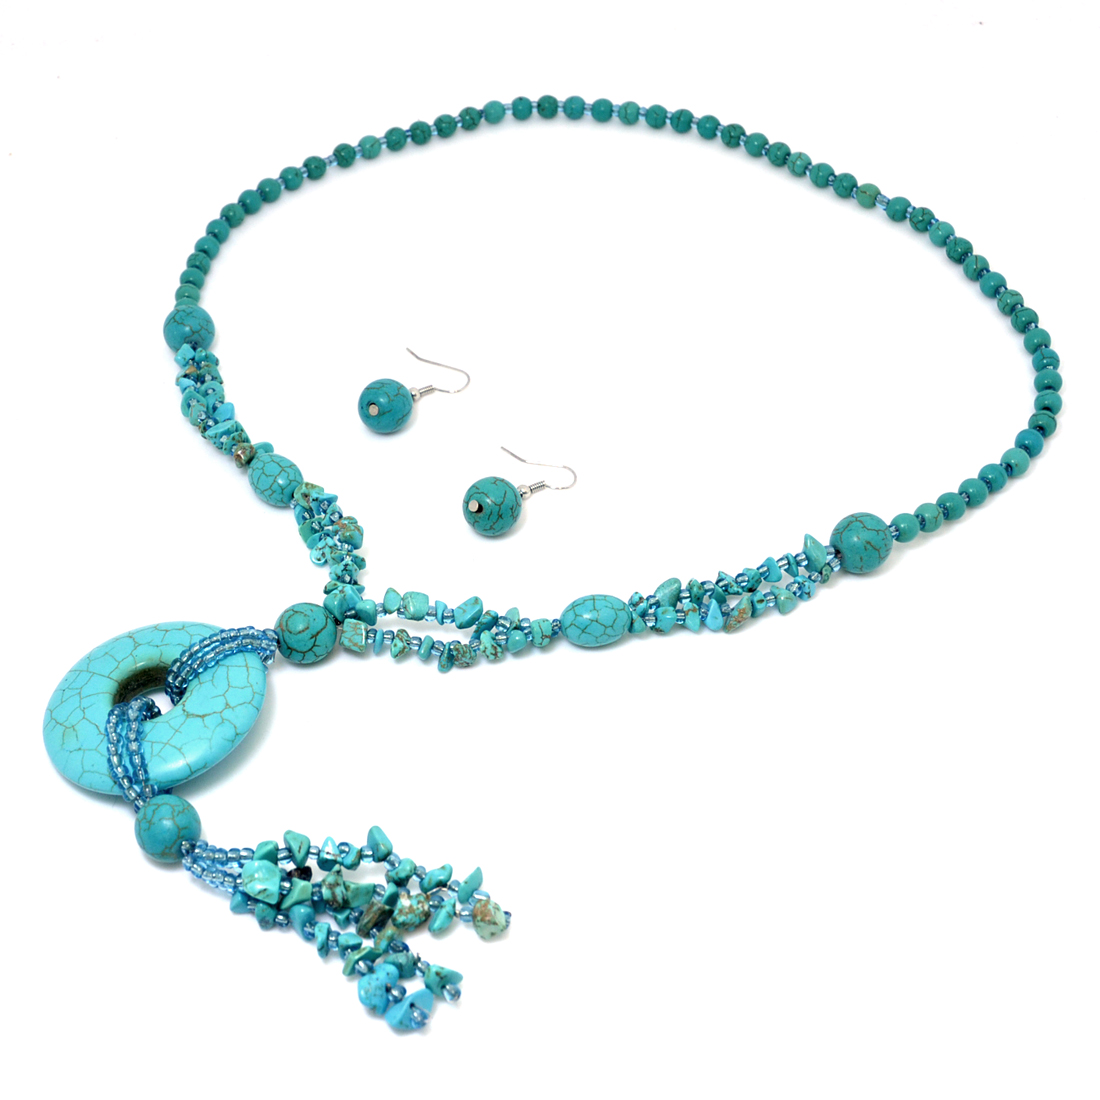 Turquoise Disc Pendant Chip Beads Necklace and Earring Set